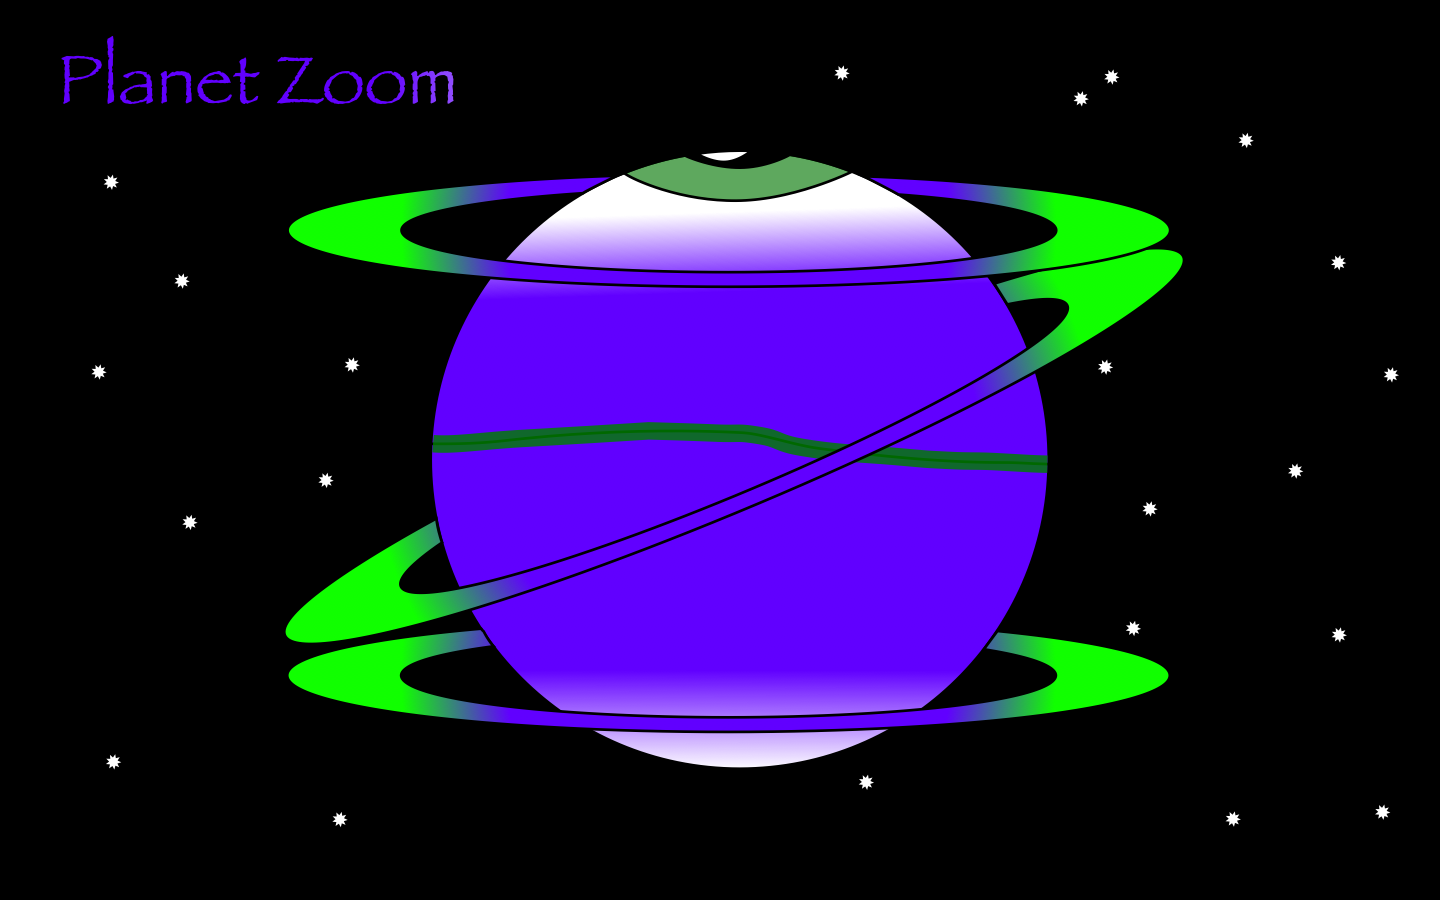 An introduction to Zoom-Out and PlanetZoom